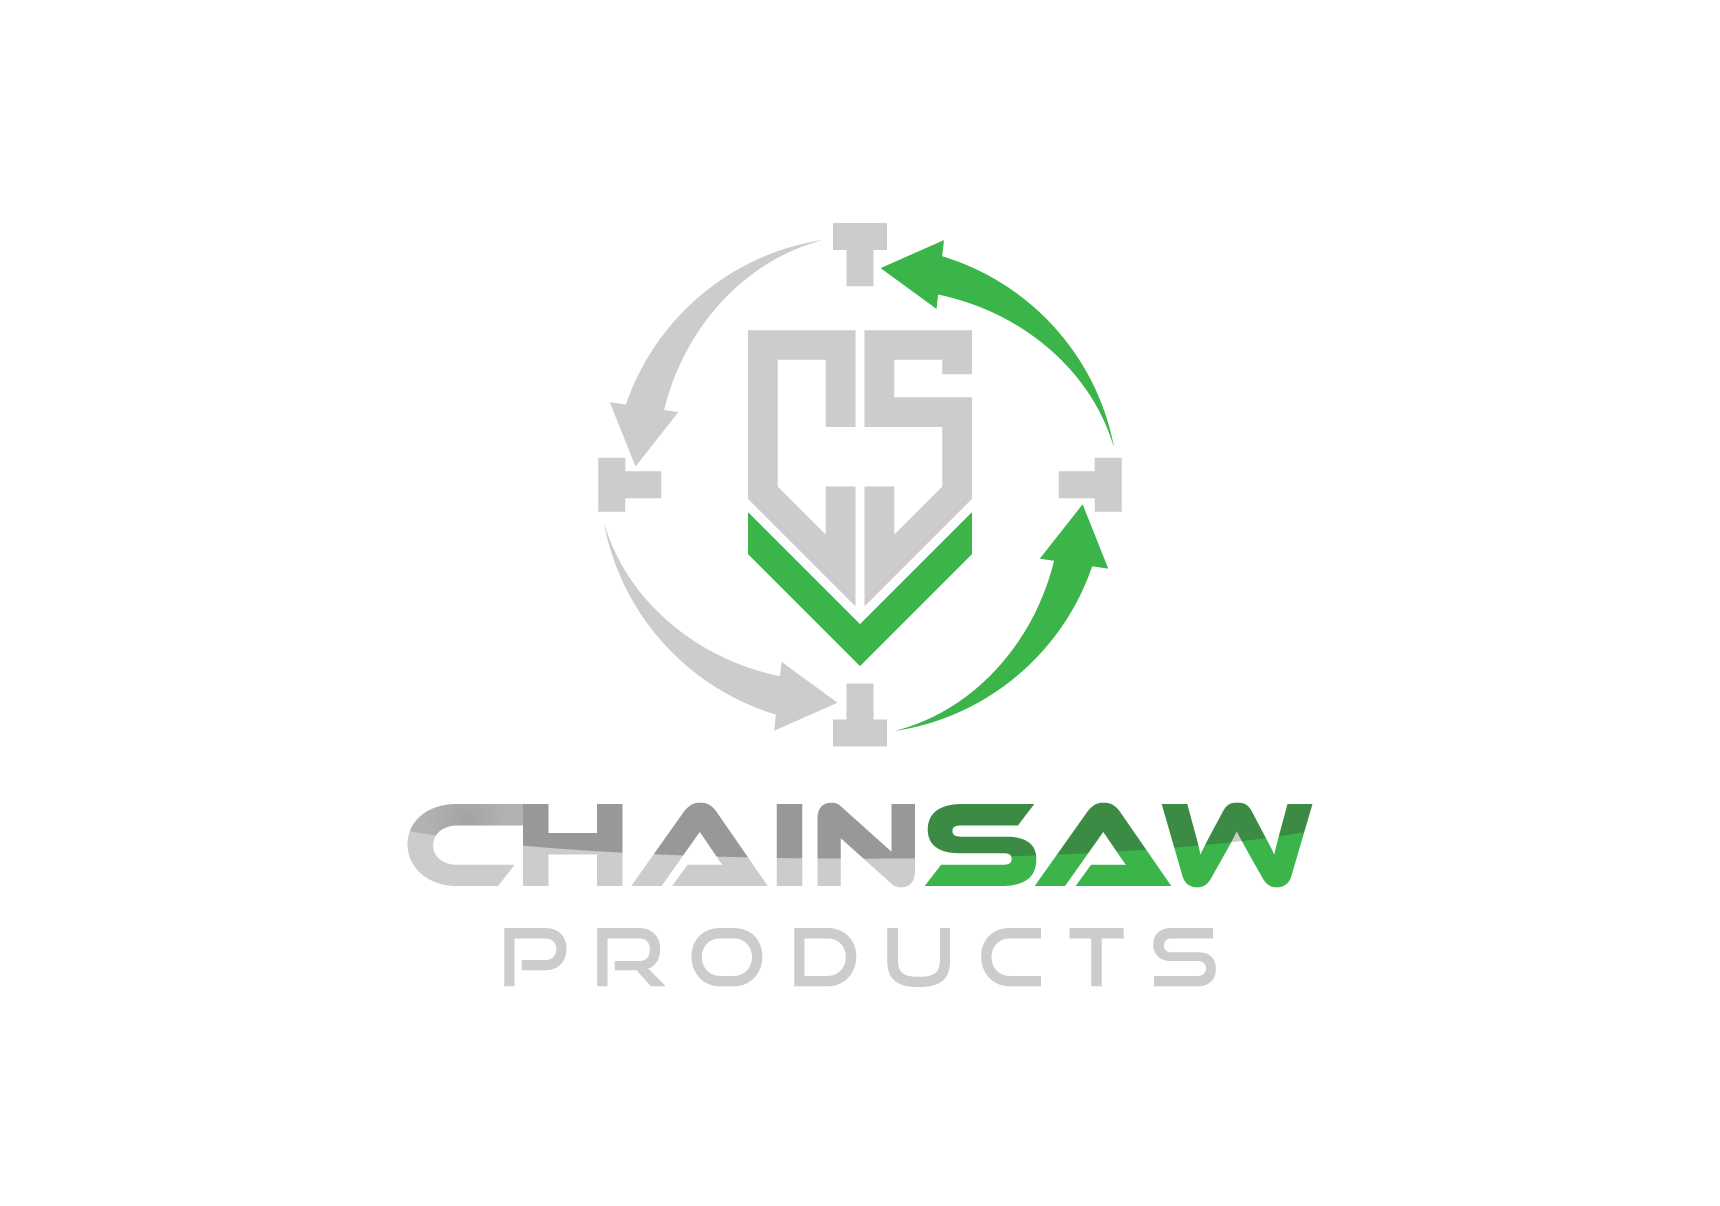 Chainsaw Products